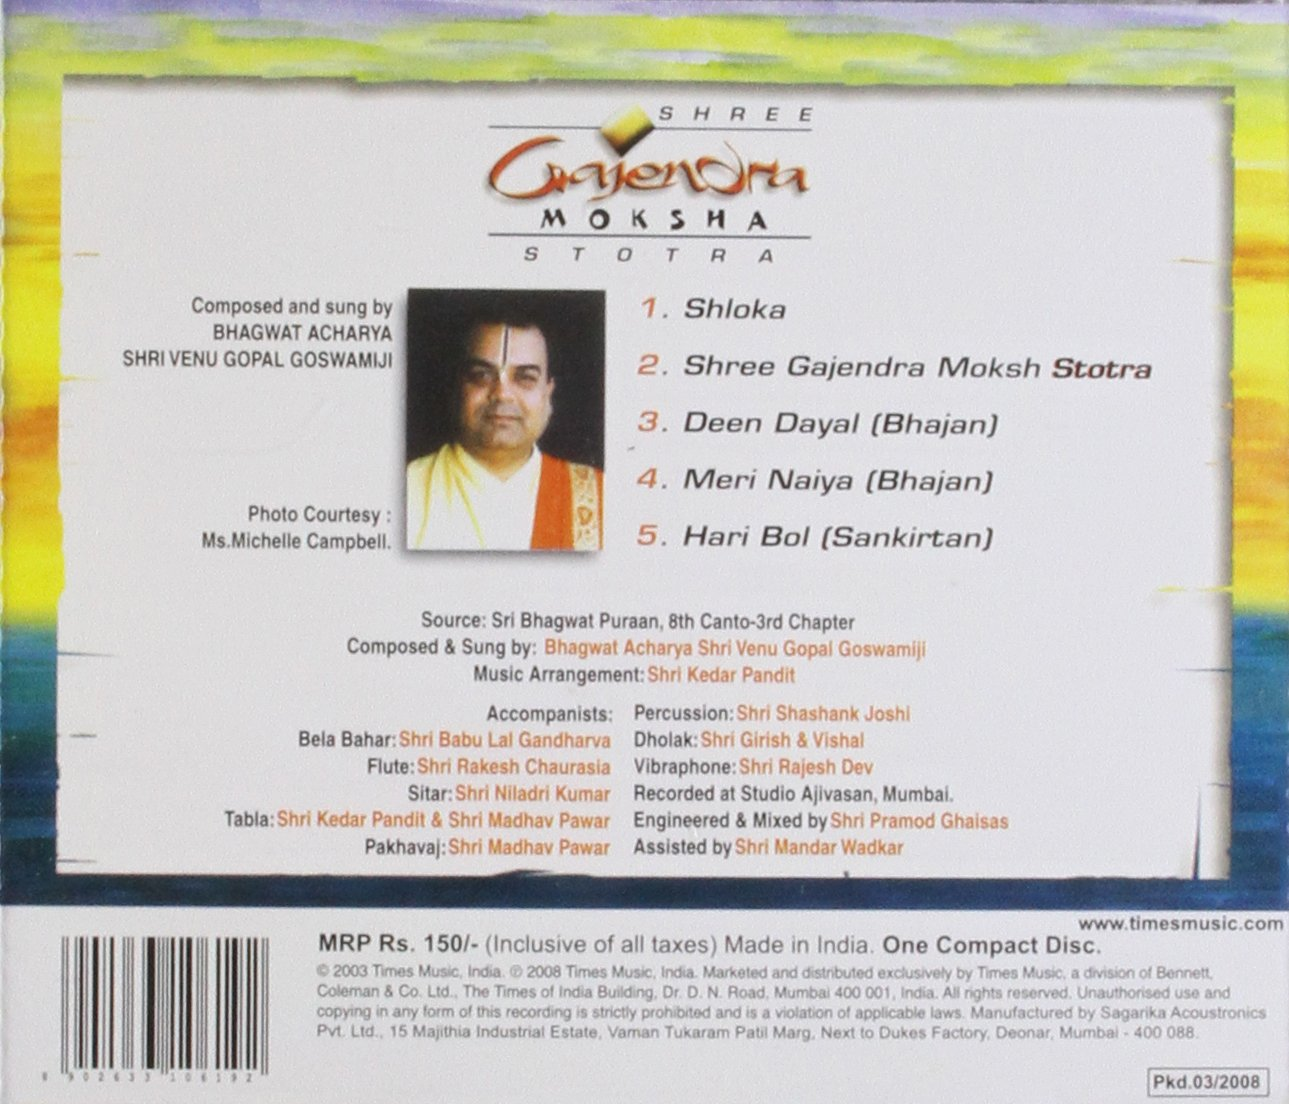 buy shree gajendra moksha stotra online at low prices in buy shree gajendra moksha stotra online at low prices in music store in